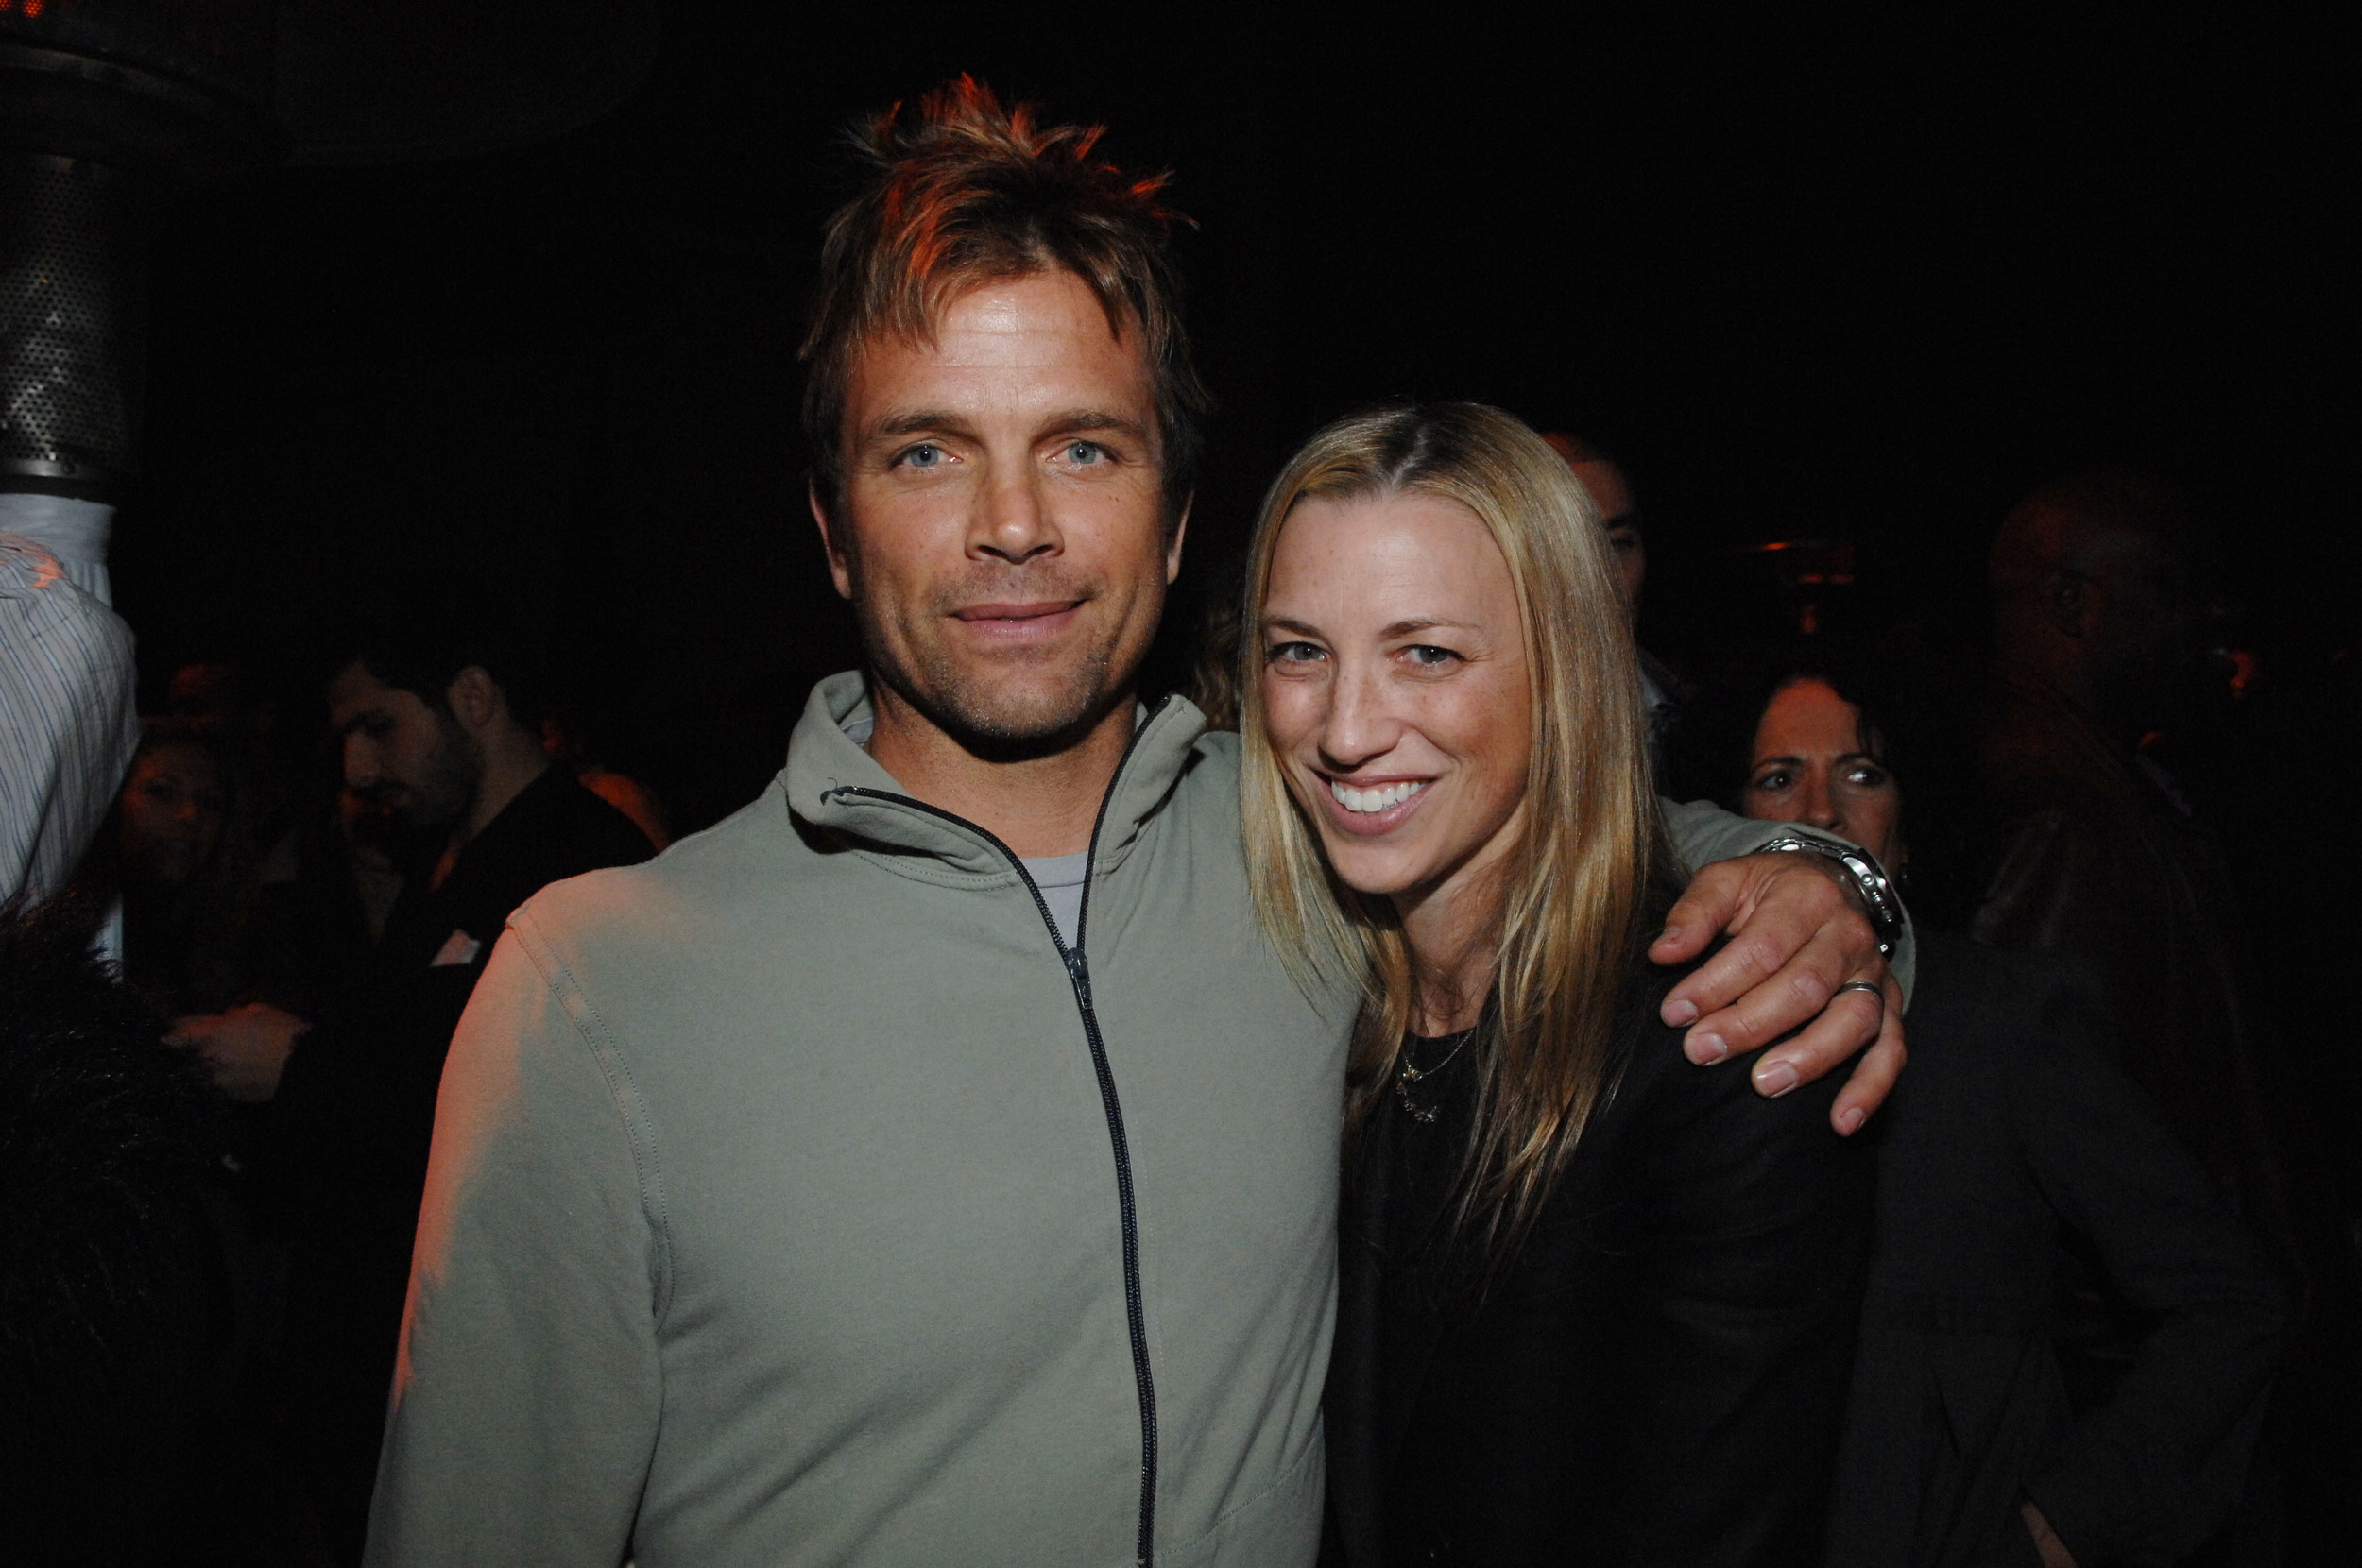 Actor David Chokachi and Susan, Director of Sustainability at Gucci had been wonderful supporters from the beginning.